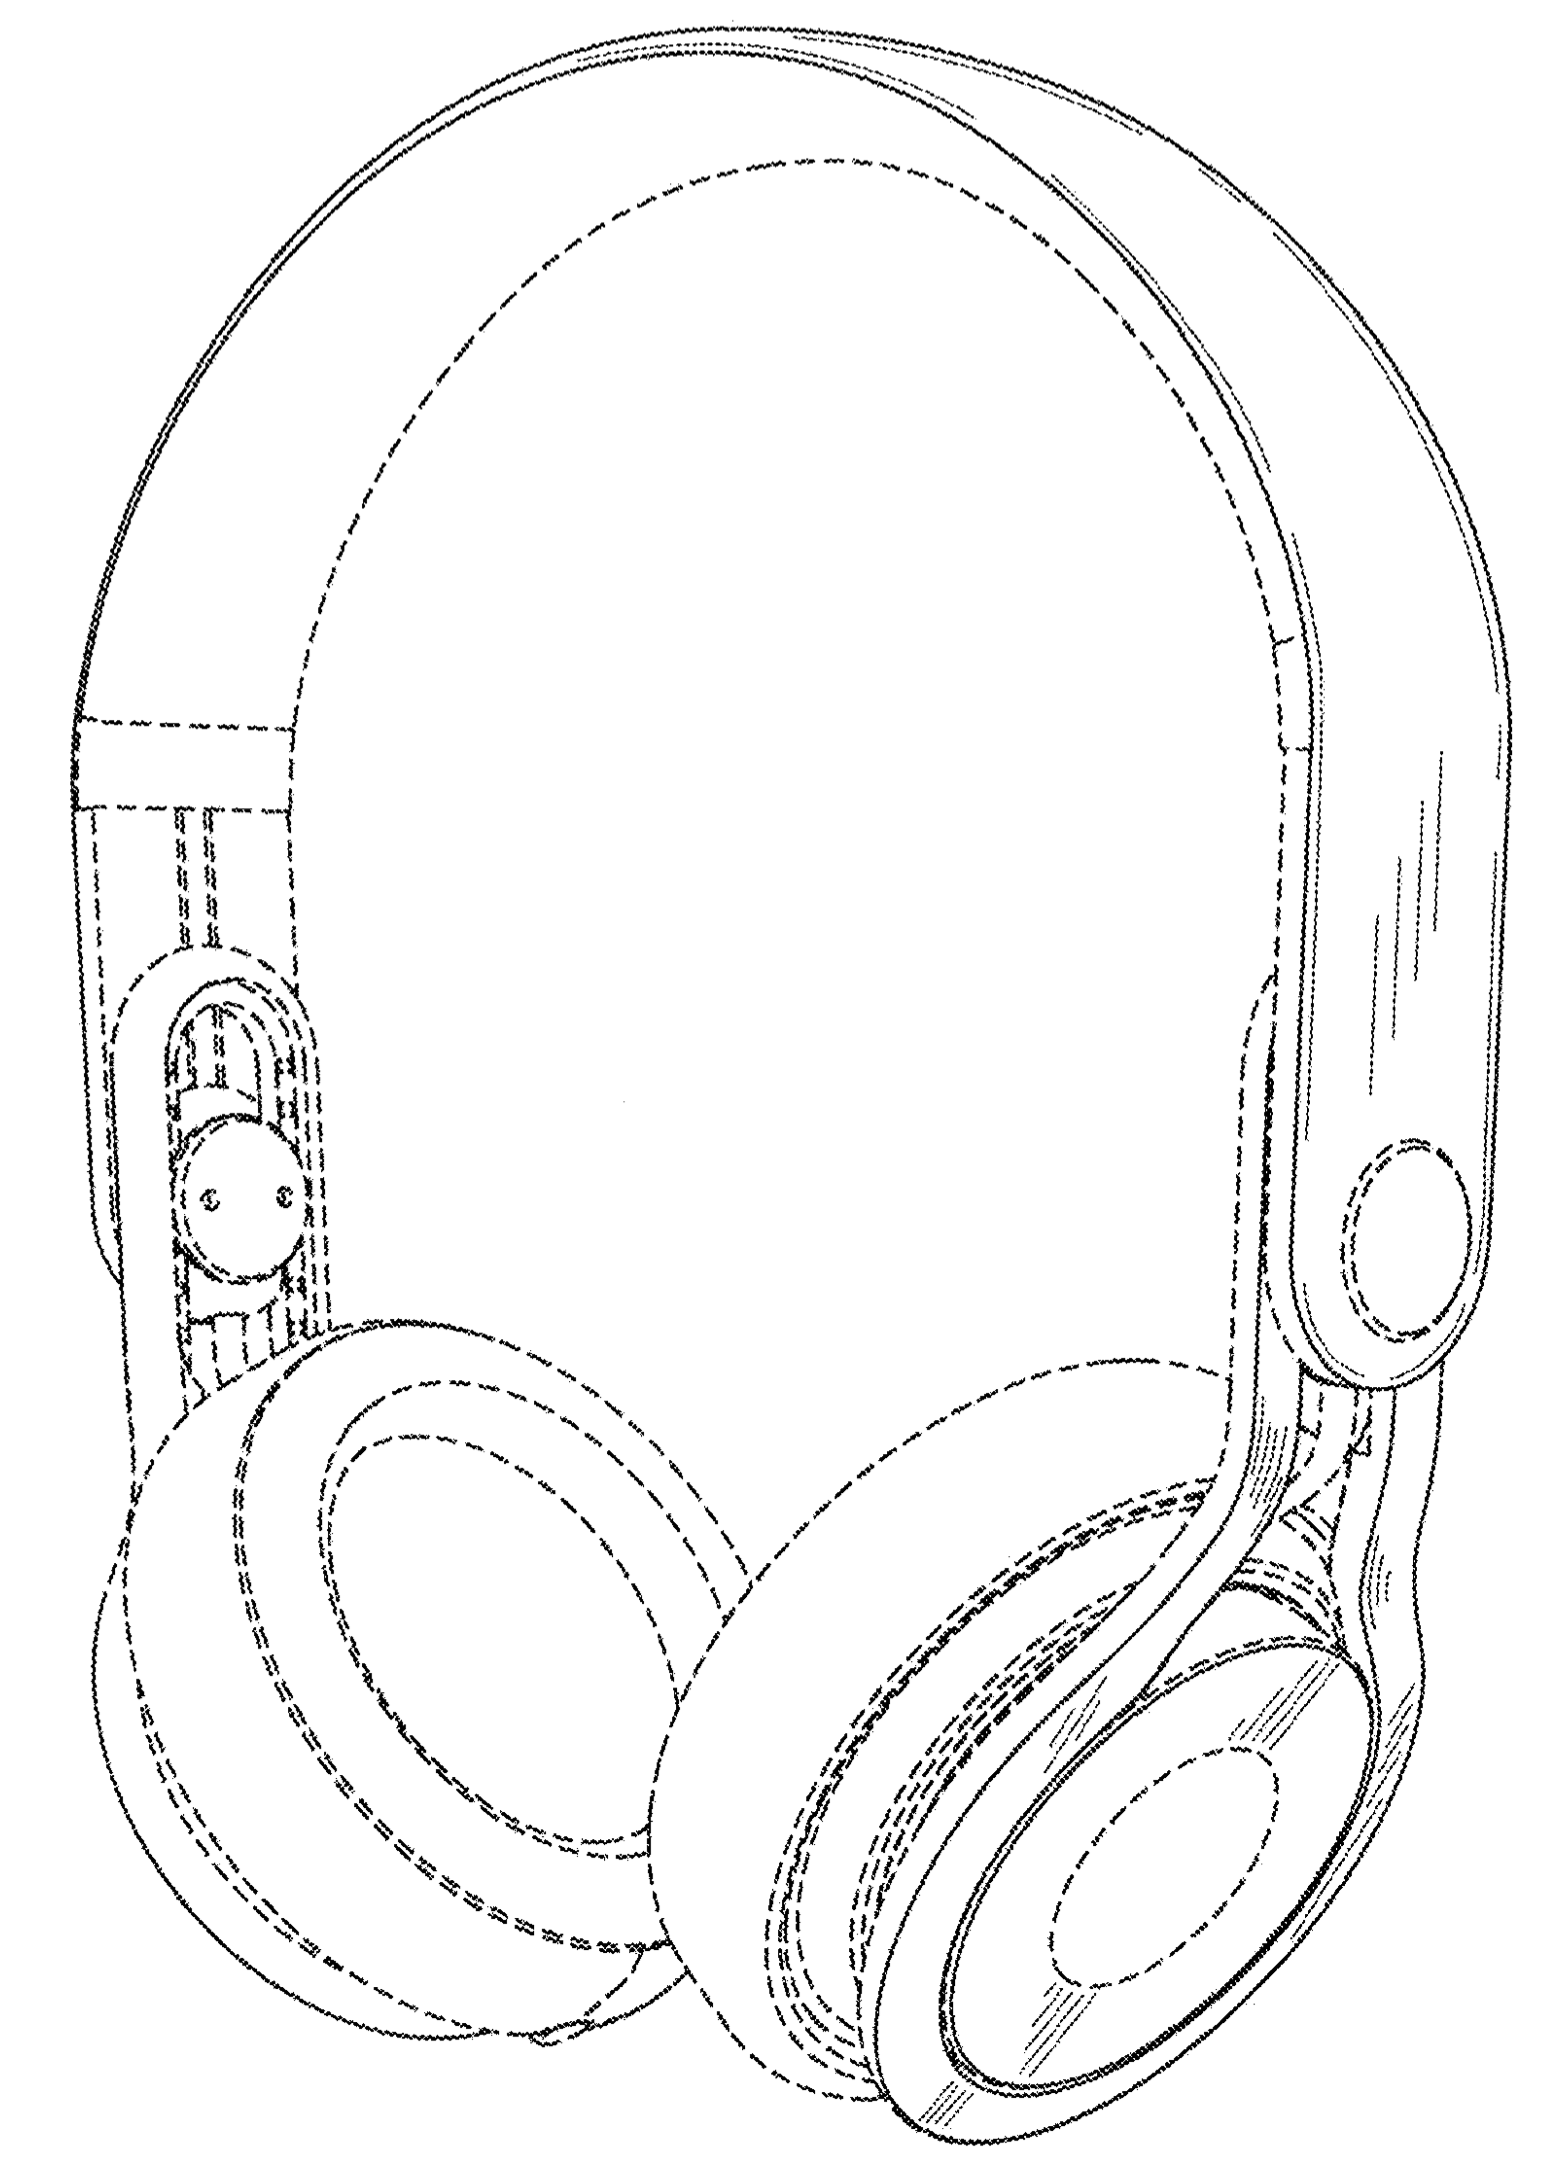 Apple awarded patent for Beats Mixr over-ear headphone design